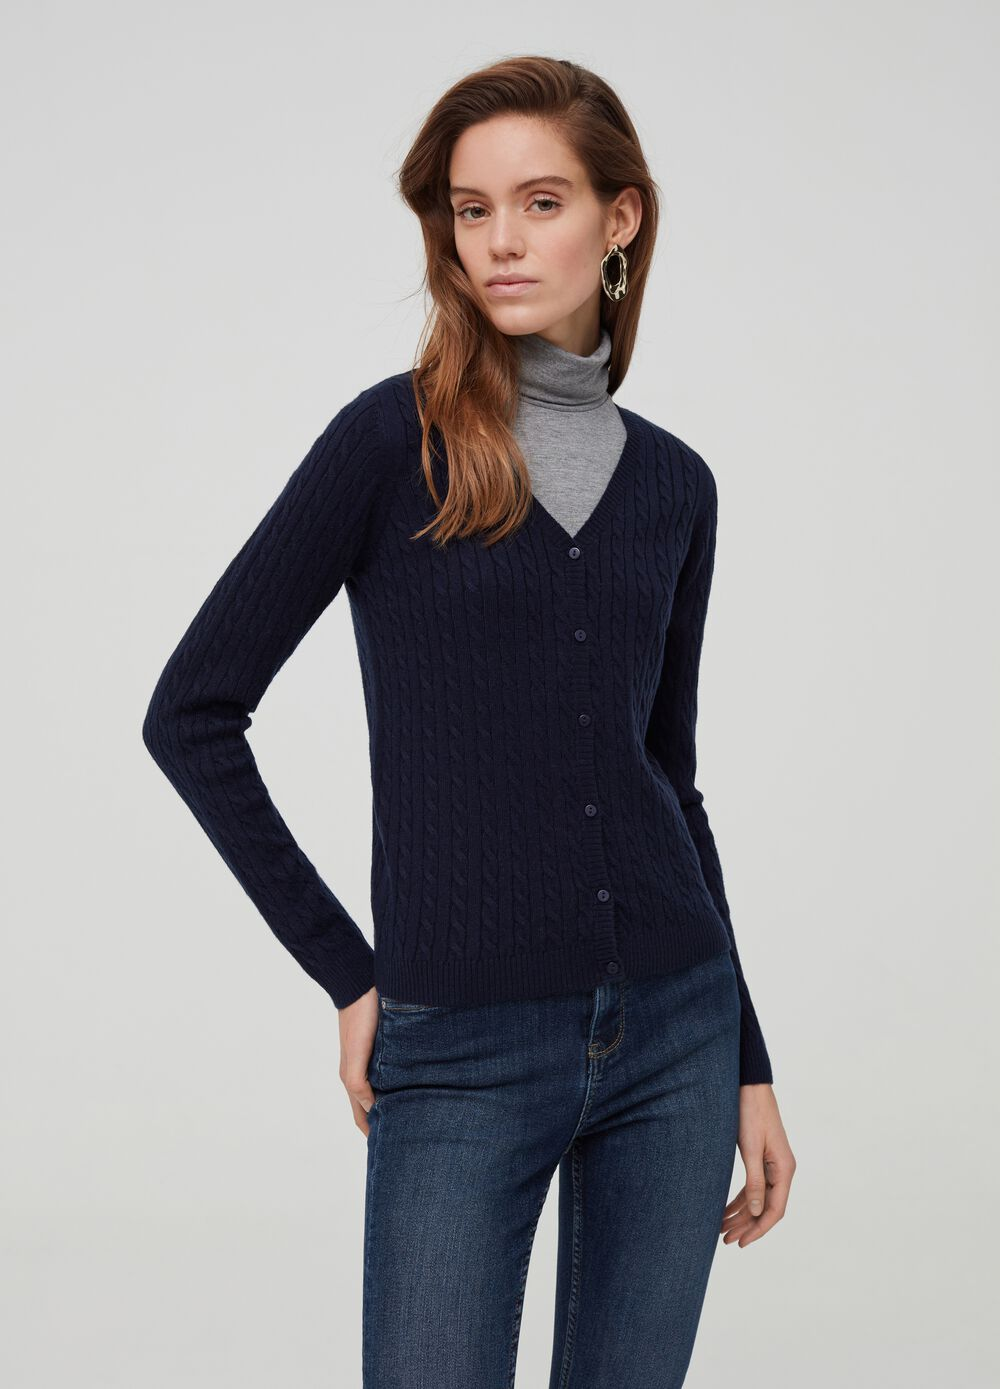 Knitted cardigan with V neck